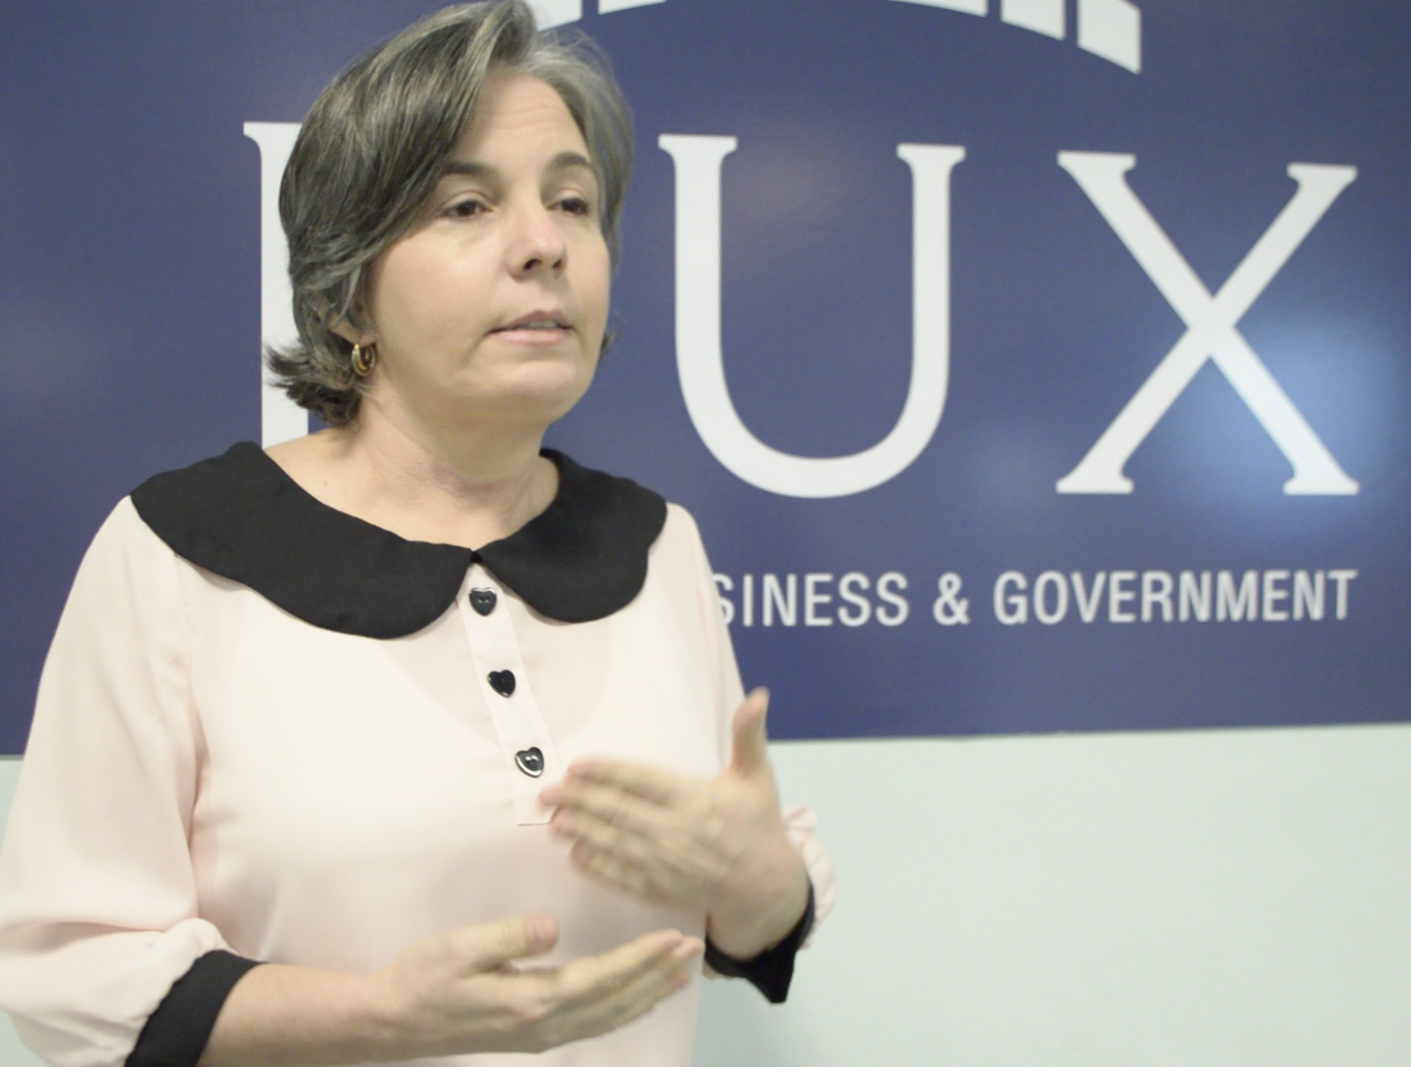 Beatriz Brito, Decana de DUX, School Business & Government